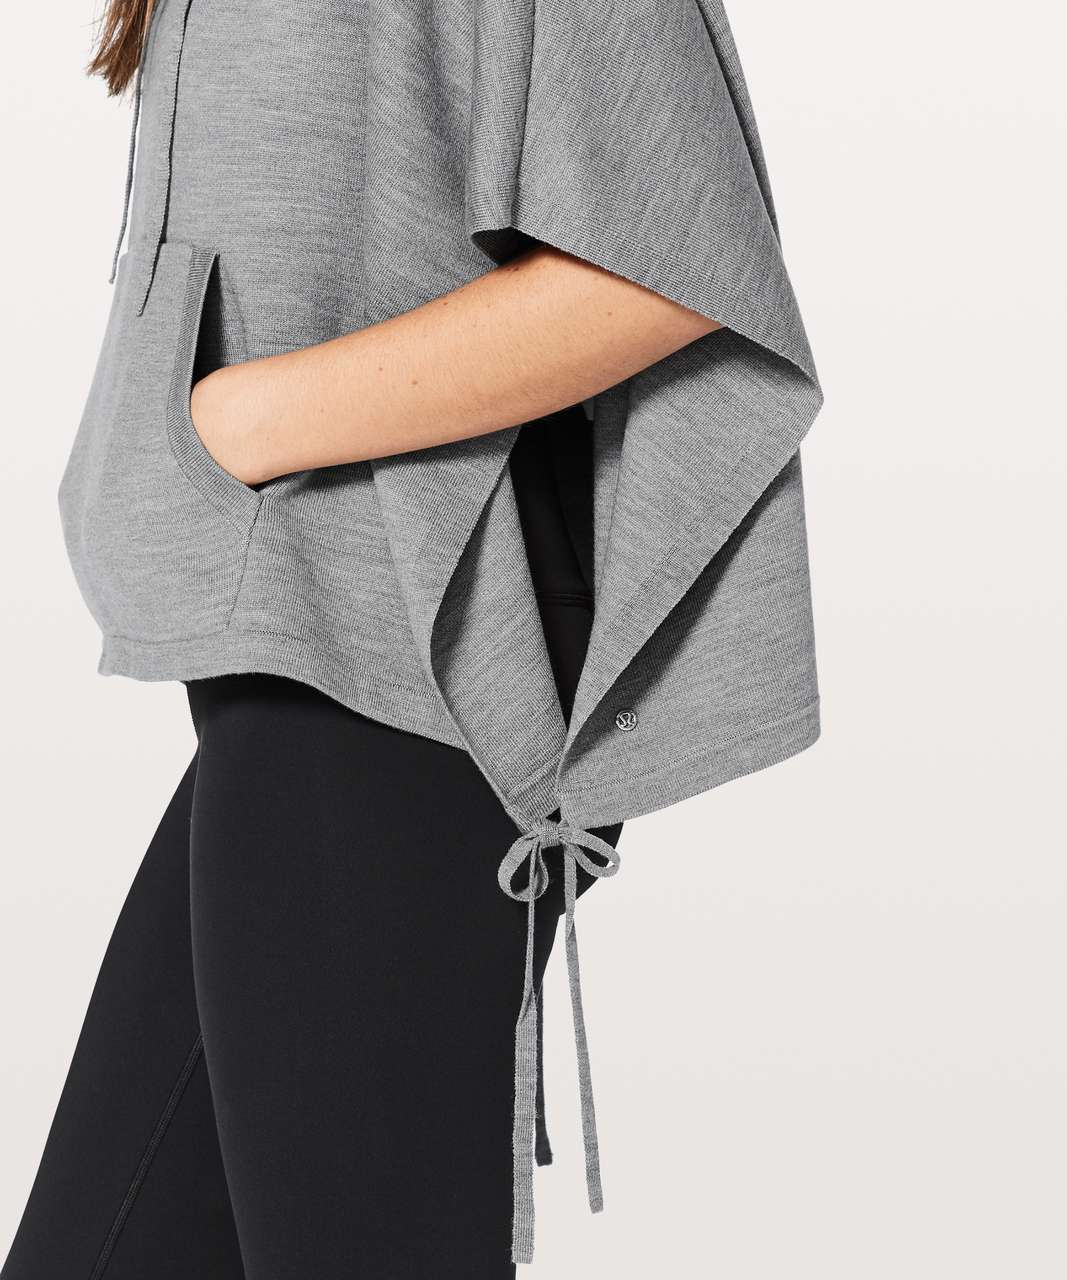 Lululemon All In A Day Hooded Poncho - Heathered Core Medium Grey